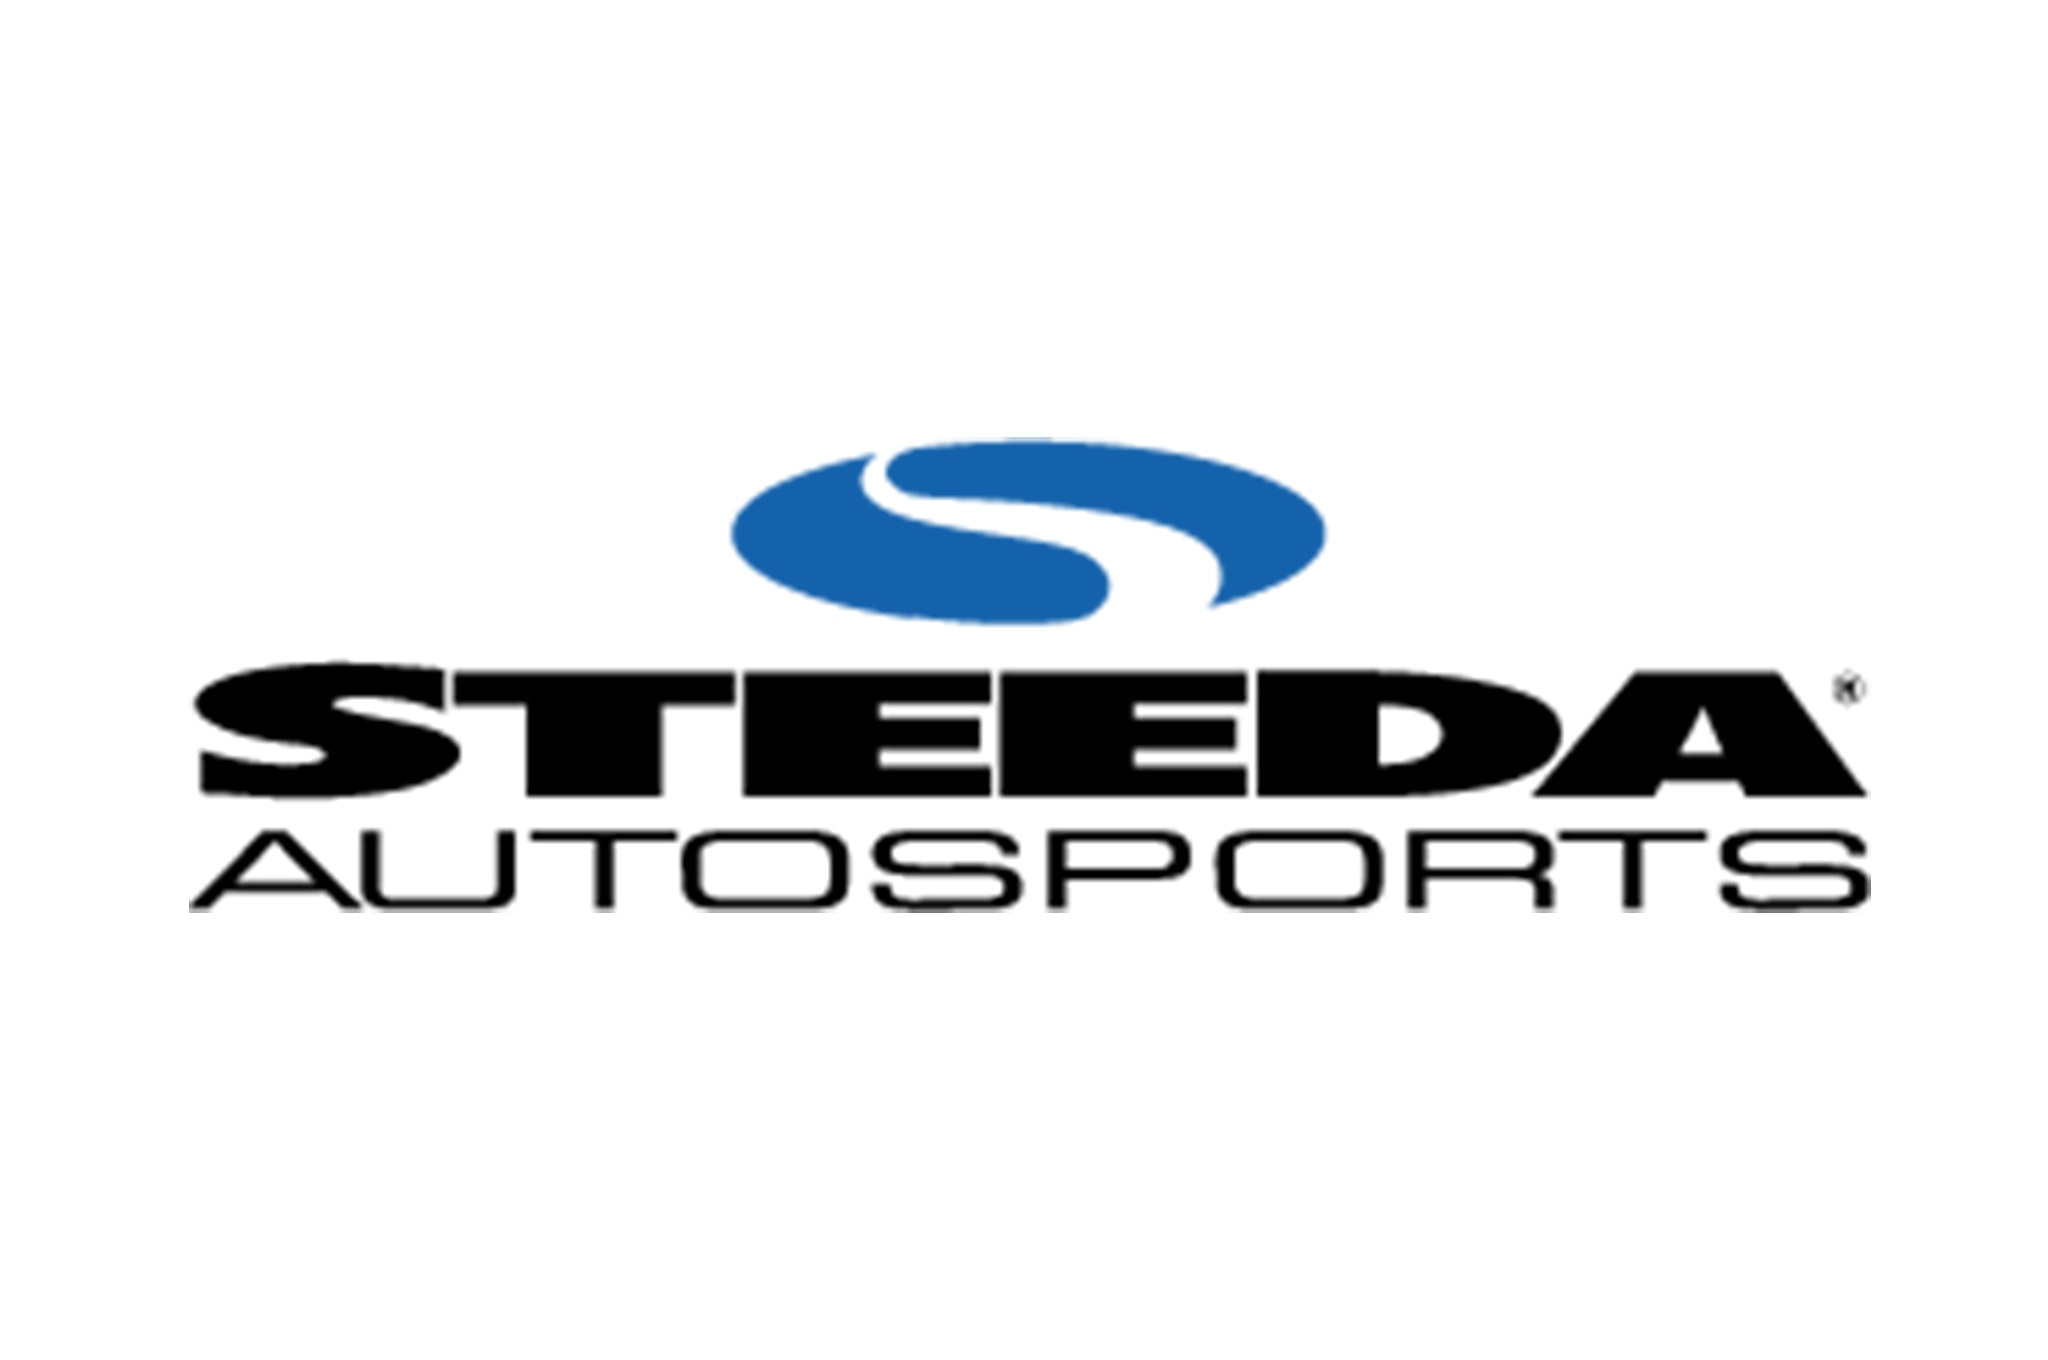 Steeda Autosports Goes Worldwide With Limited Production